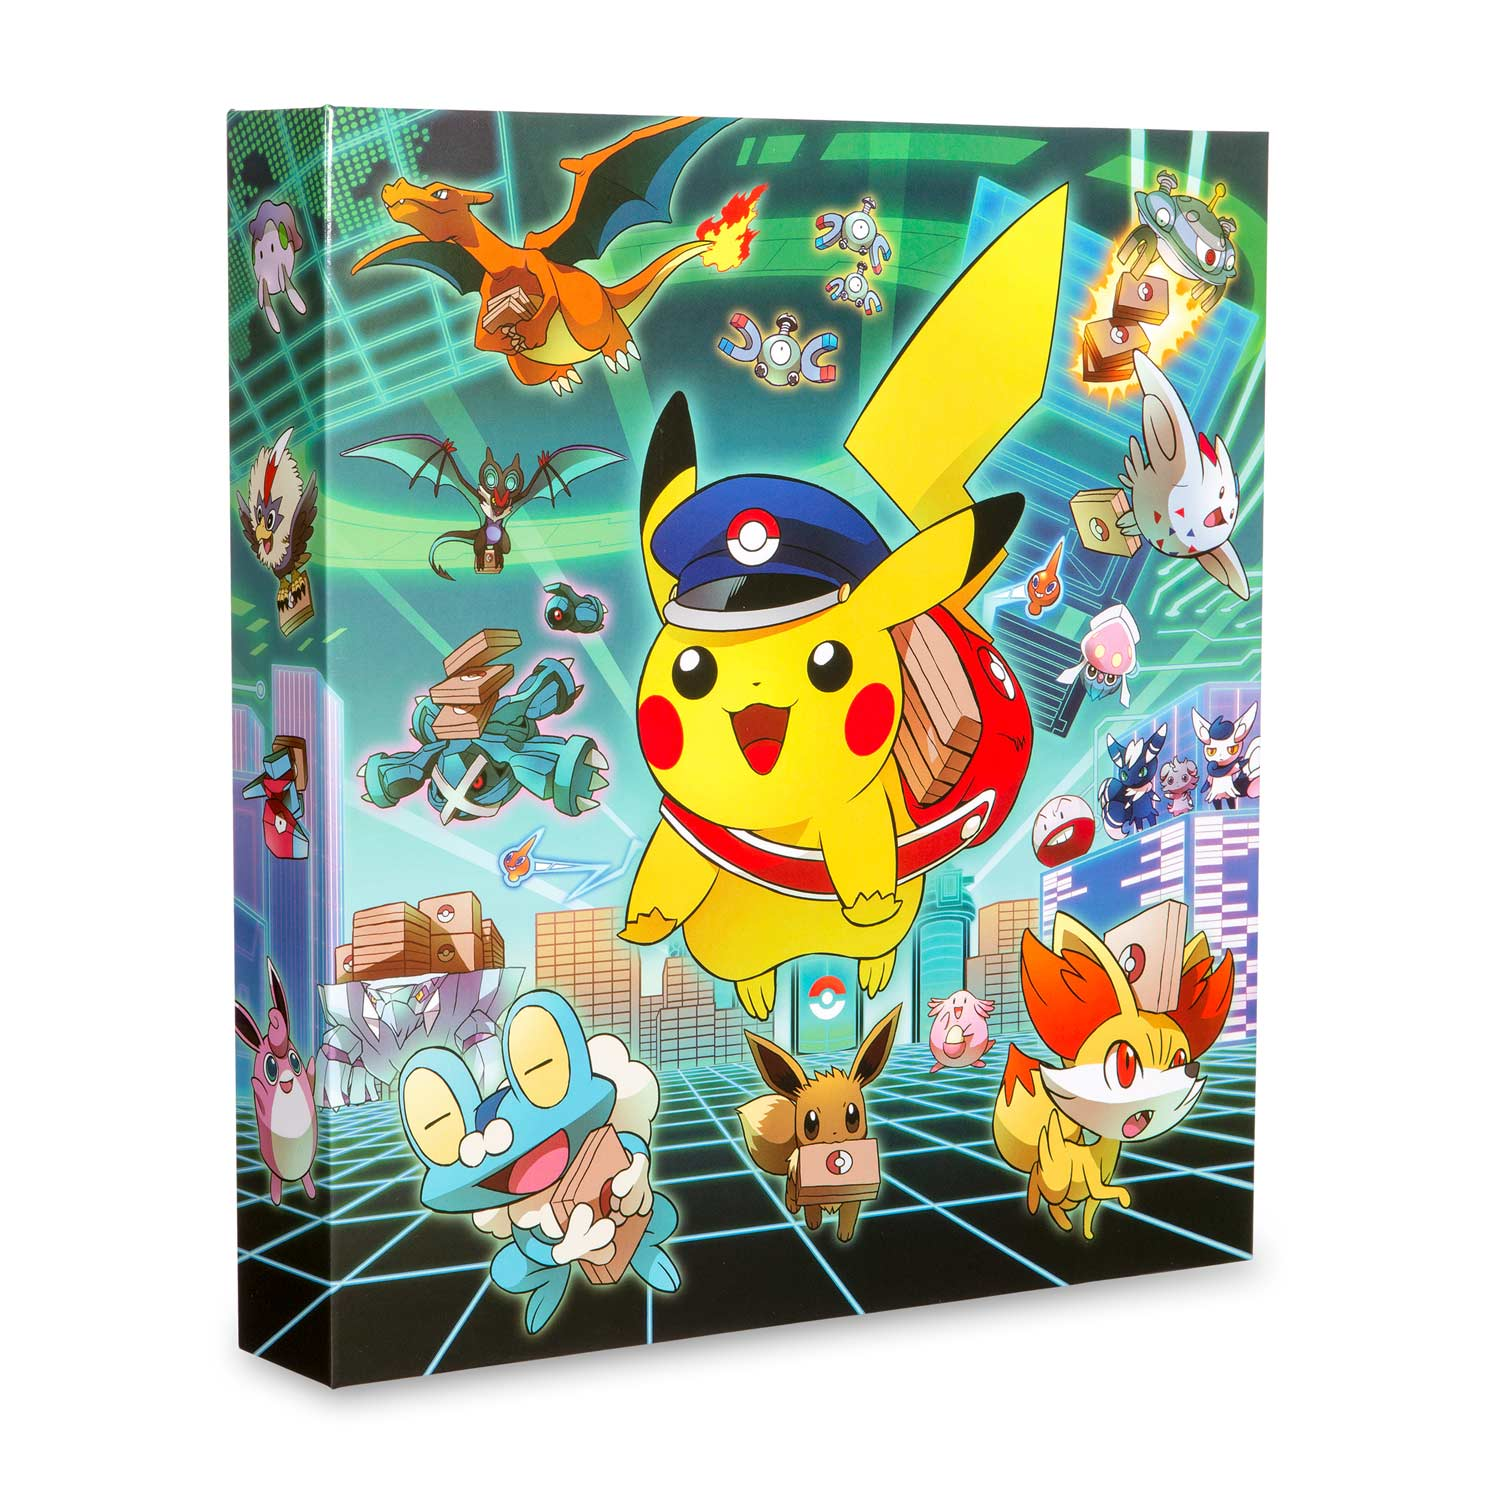 photograph relating to Pokemon Binder Cover Printable titled Exceptional Shipping and delivery Pikachu 1 Inside of. D-Ring Binder